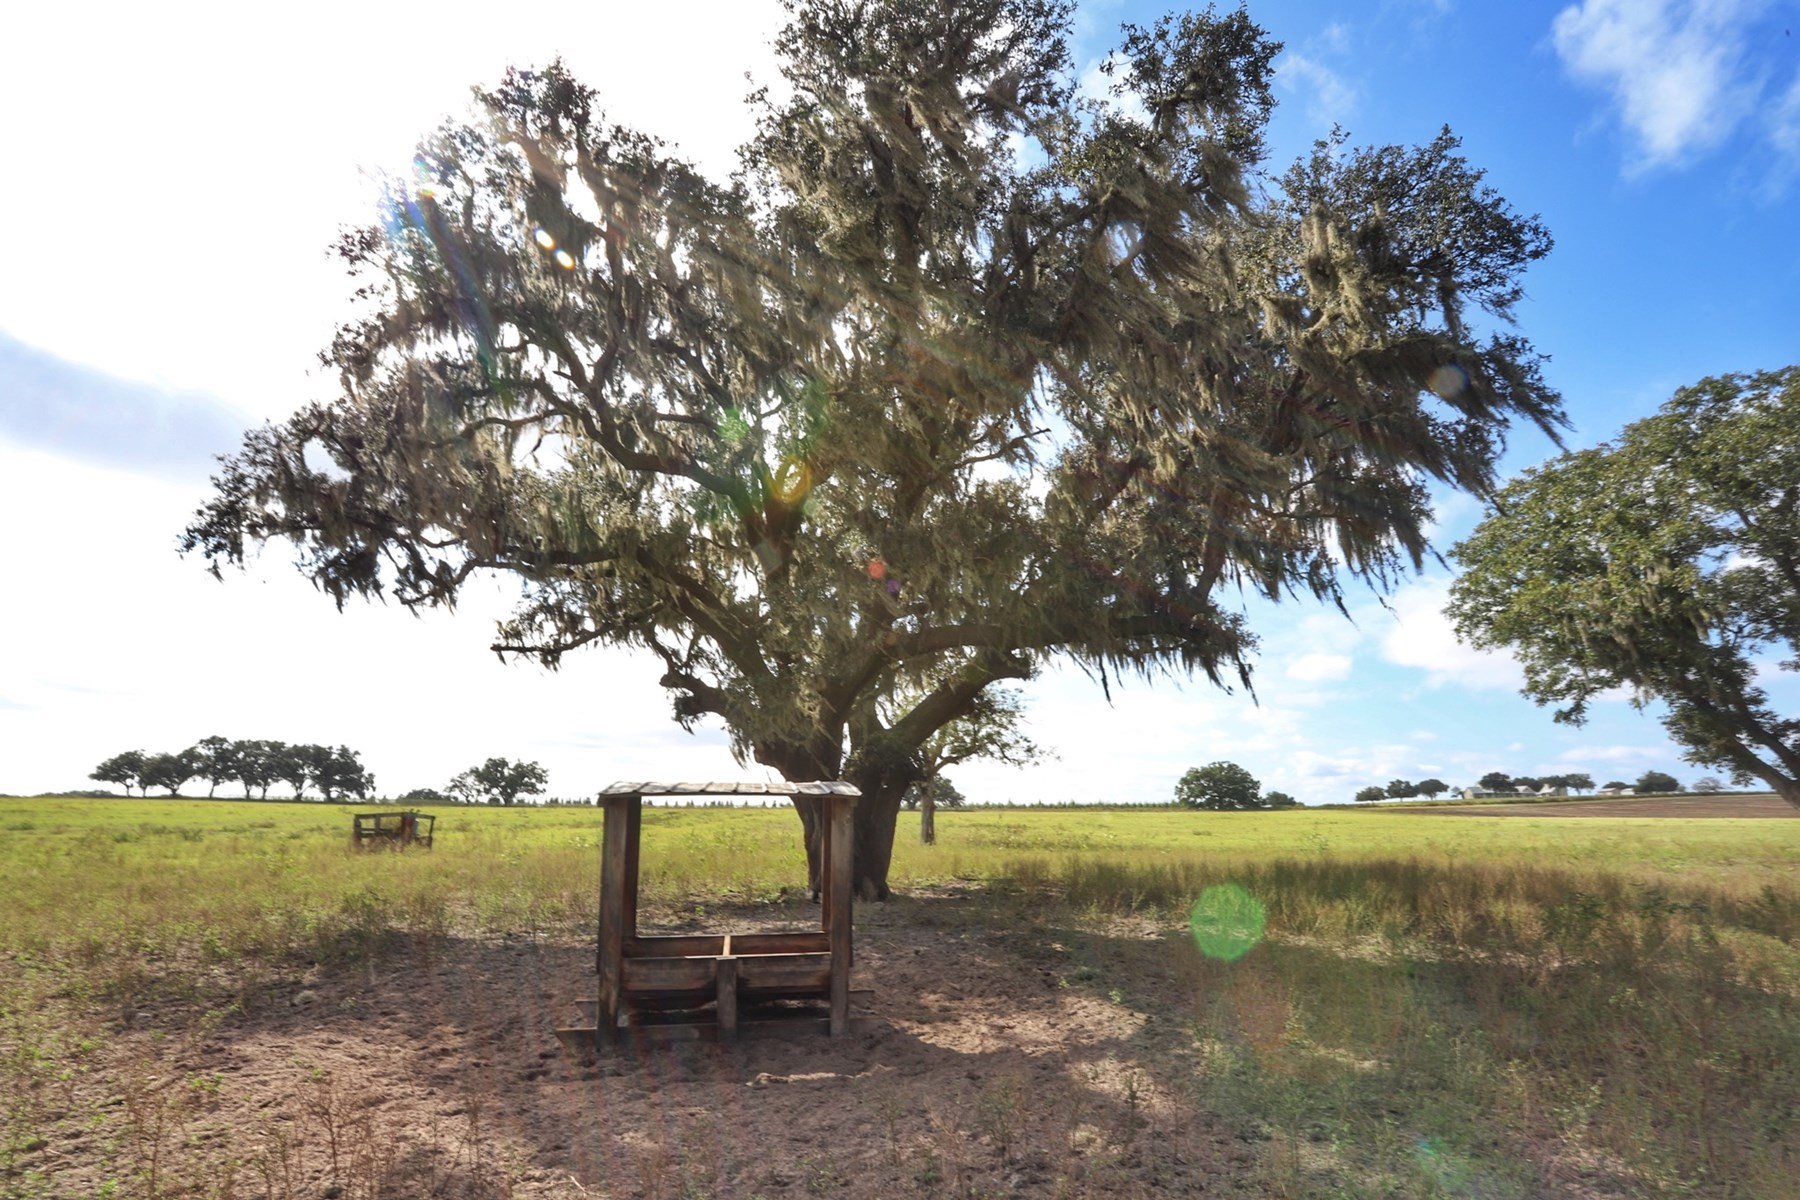 HORSE FARM OR RANCH FOR SALE NEAR OCALA FL